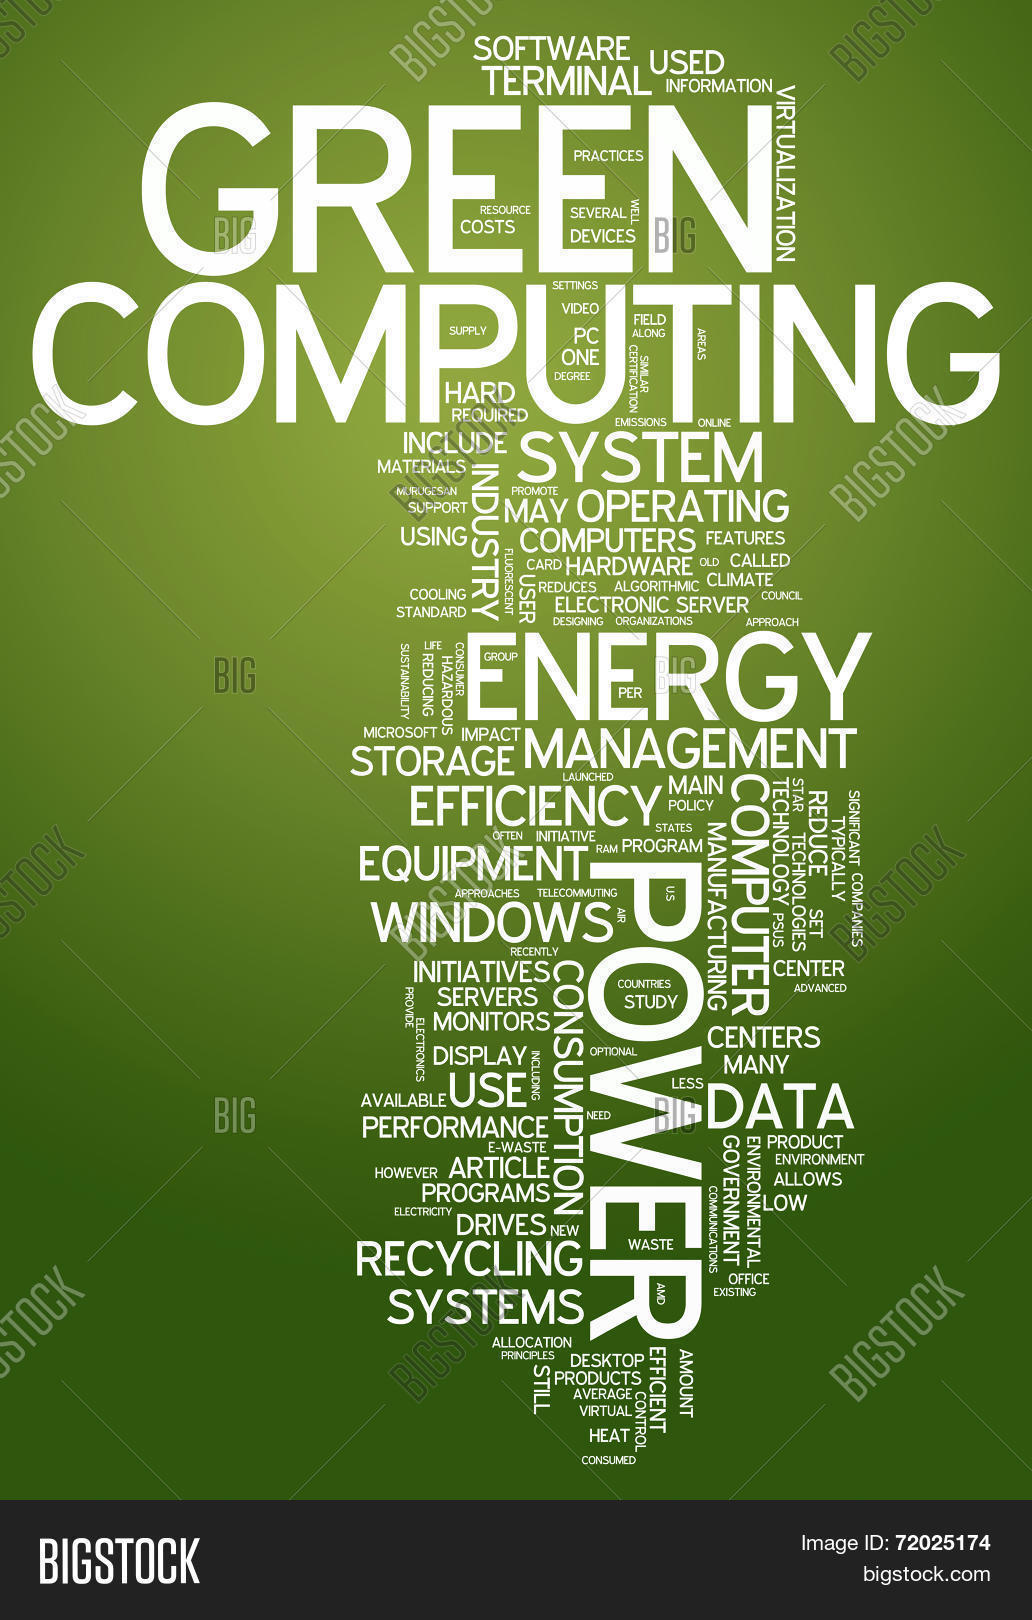 green computing algorithm efficiency An efficient green control algorithm in  achieving an energy-efficiency control and simultaneously satisfying a performance  loud computing is a service new.